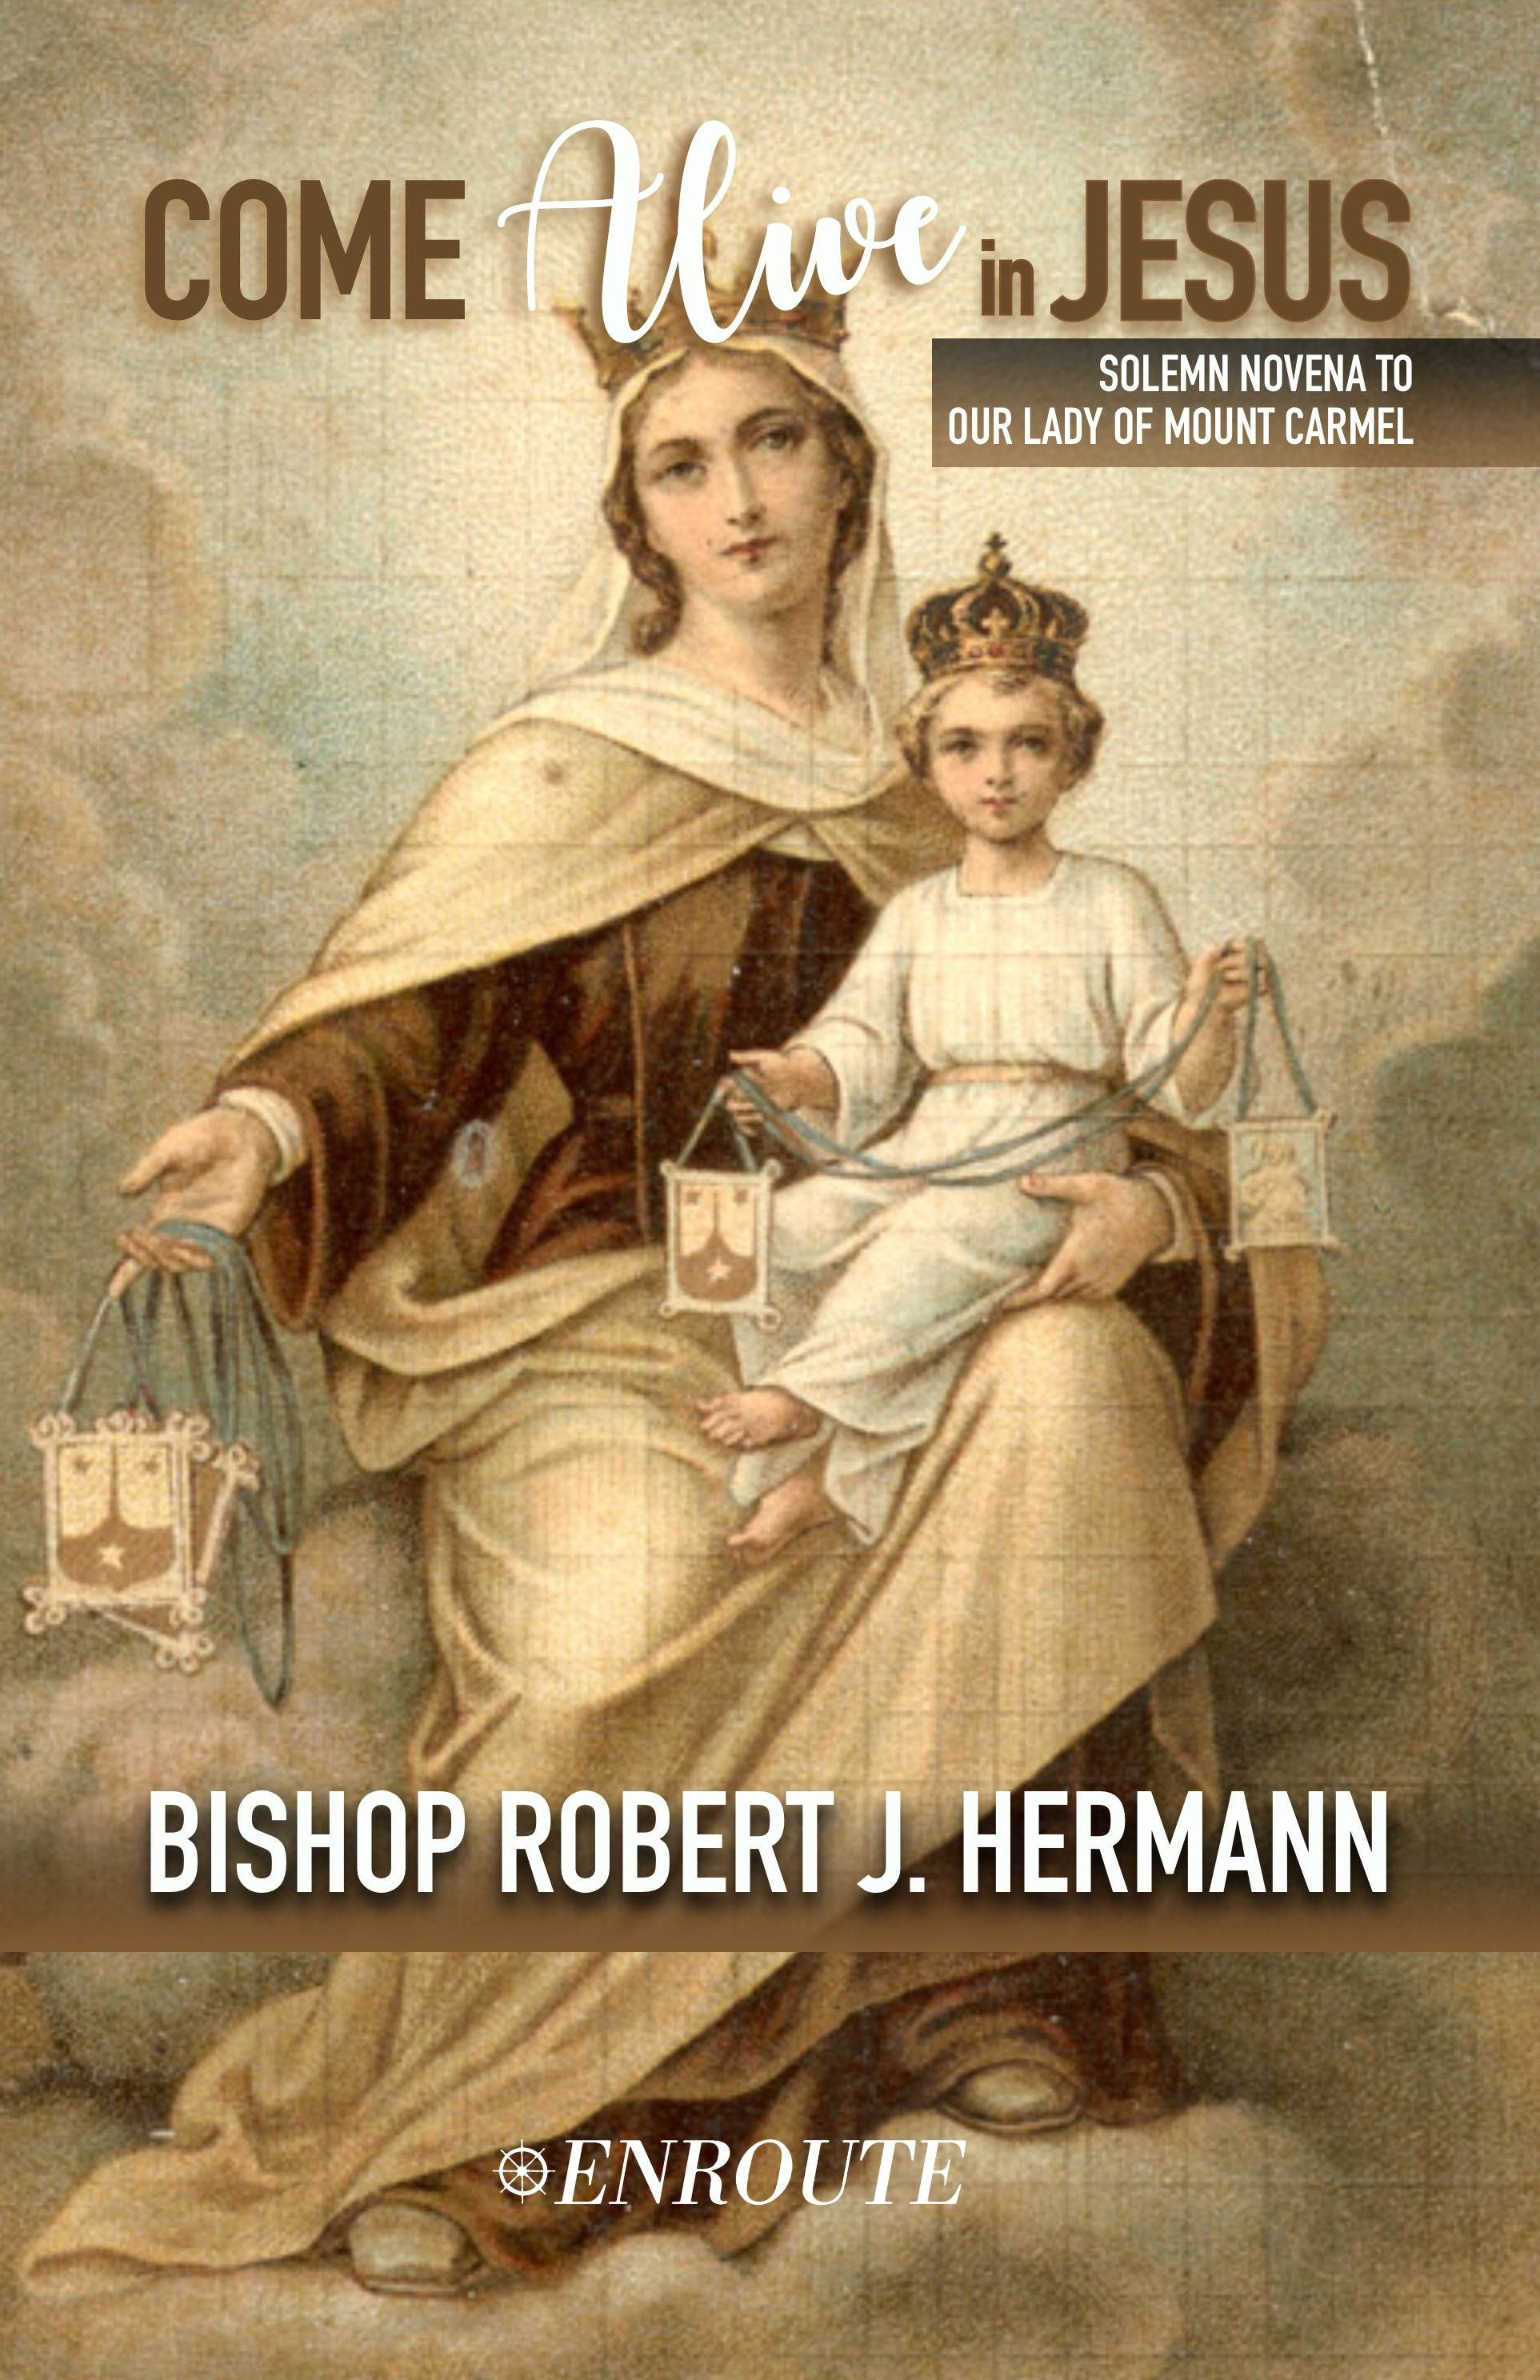 Come Alive in Jesus! Solemn Novena to Our Lady of Mount Carmel by Bishop Robert J. Hermann